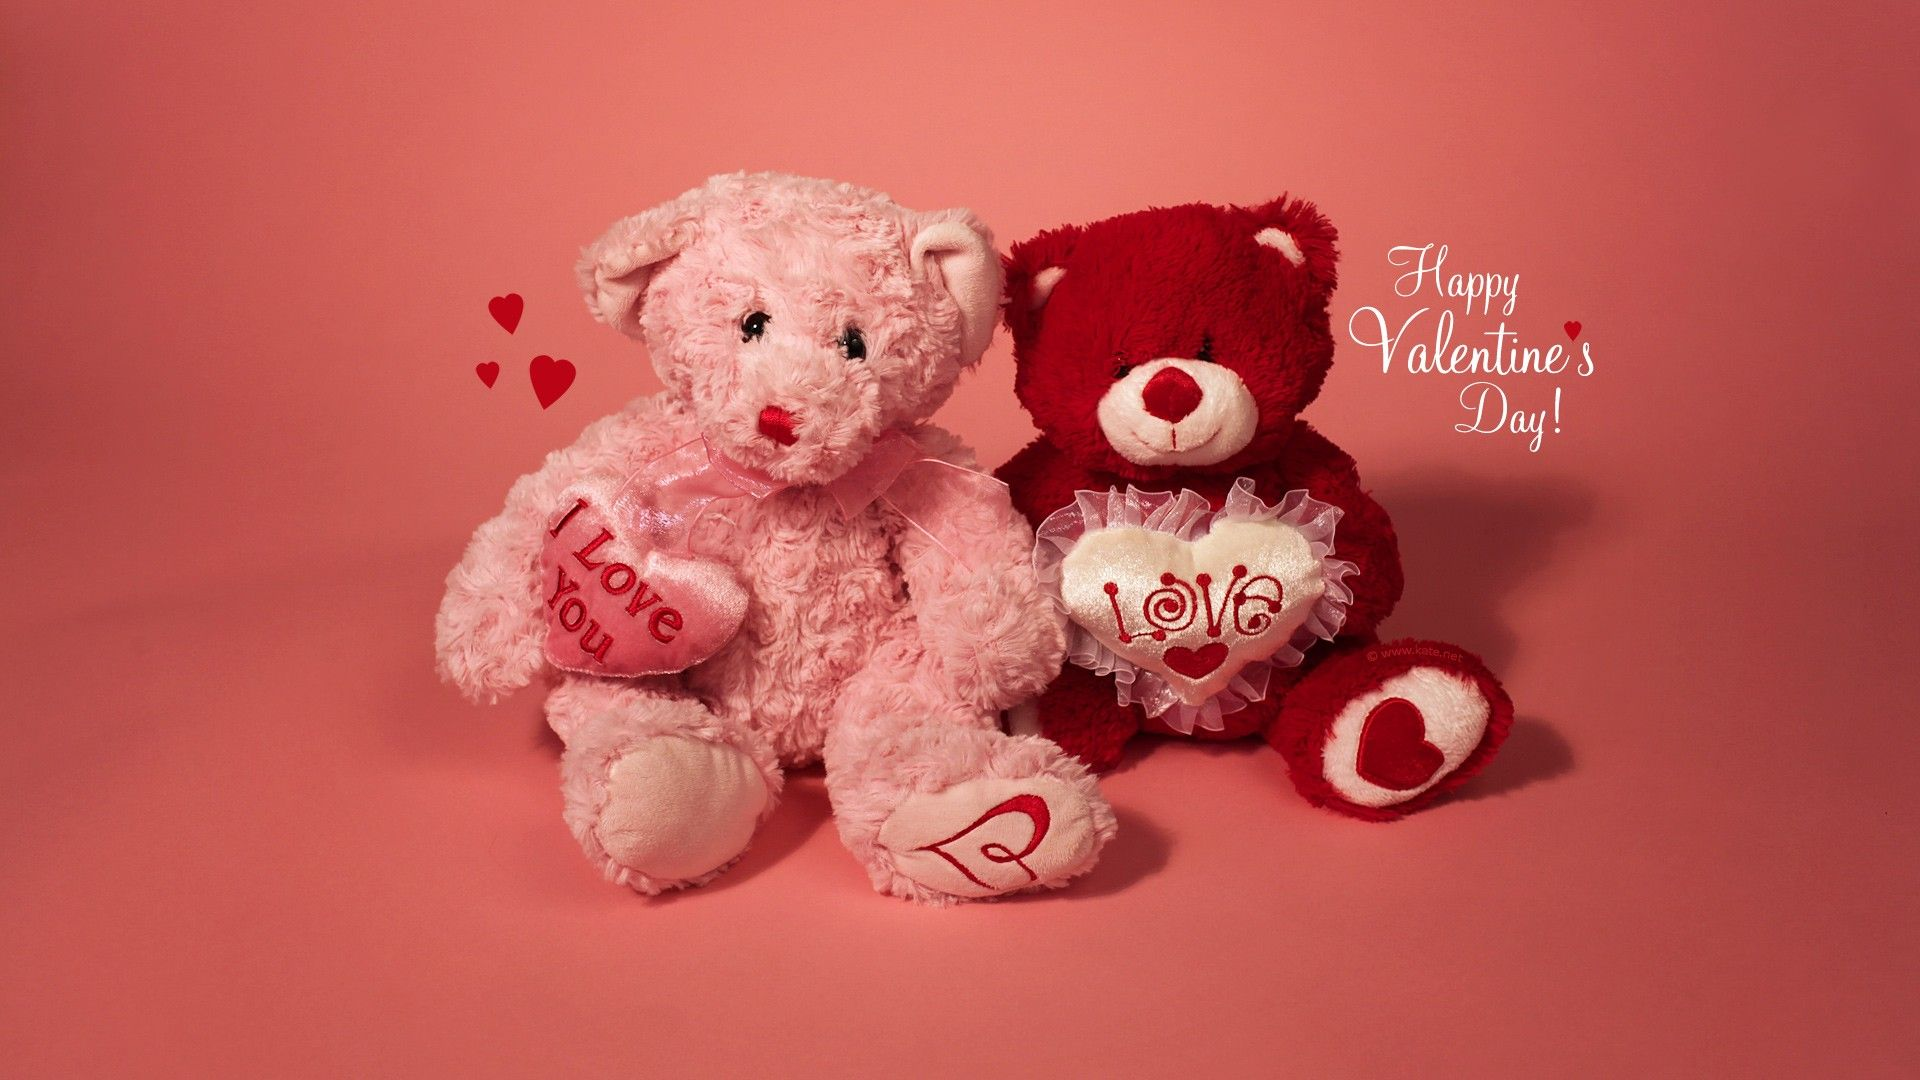 Cute Valentines Day Wallpapers Valentines Day Pinterest